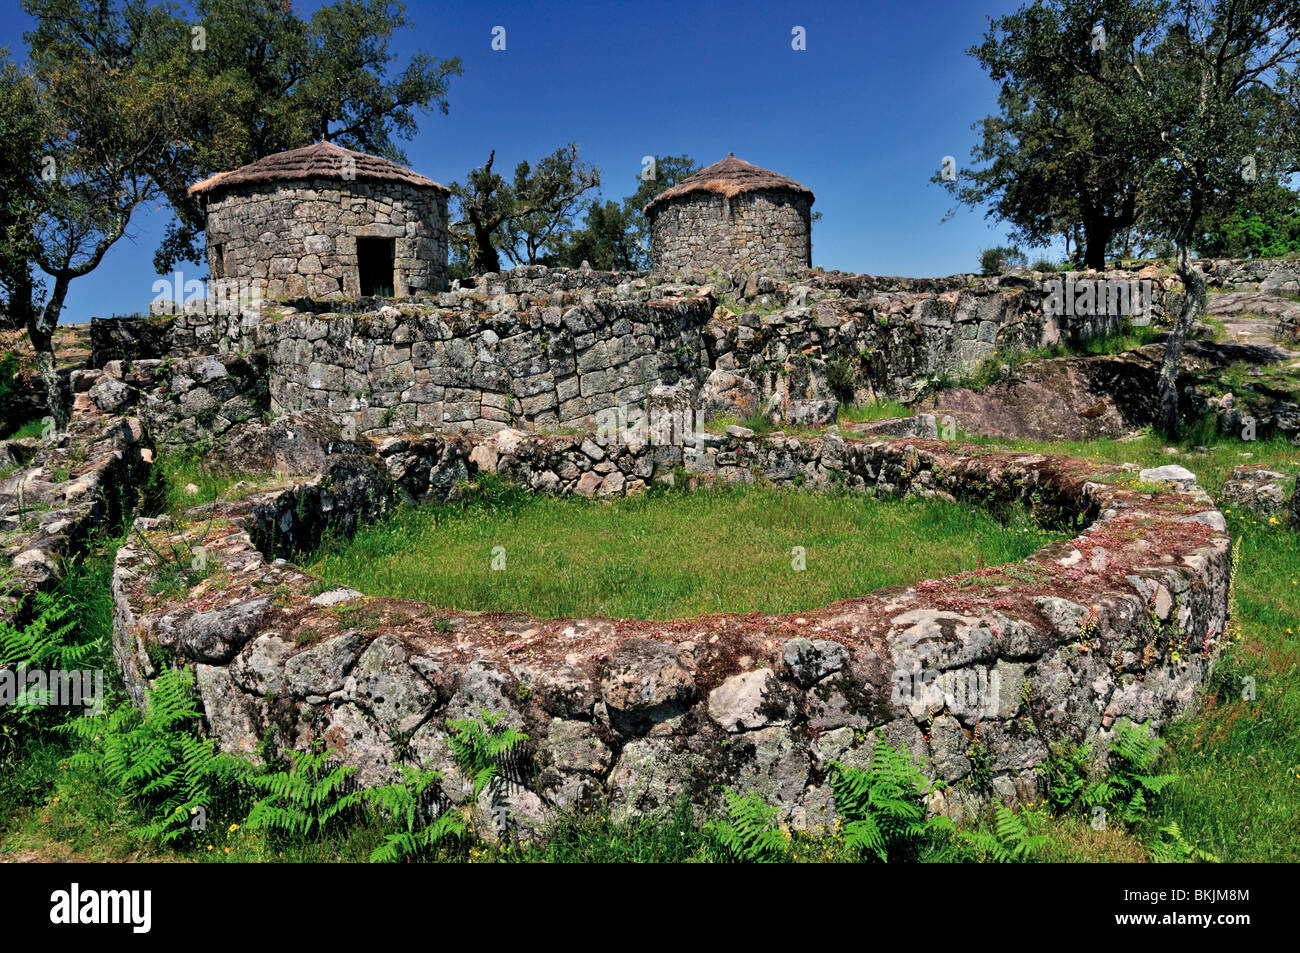 Portugal: Celtic ruins of Citania de Briteiros near Braga ...